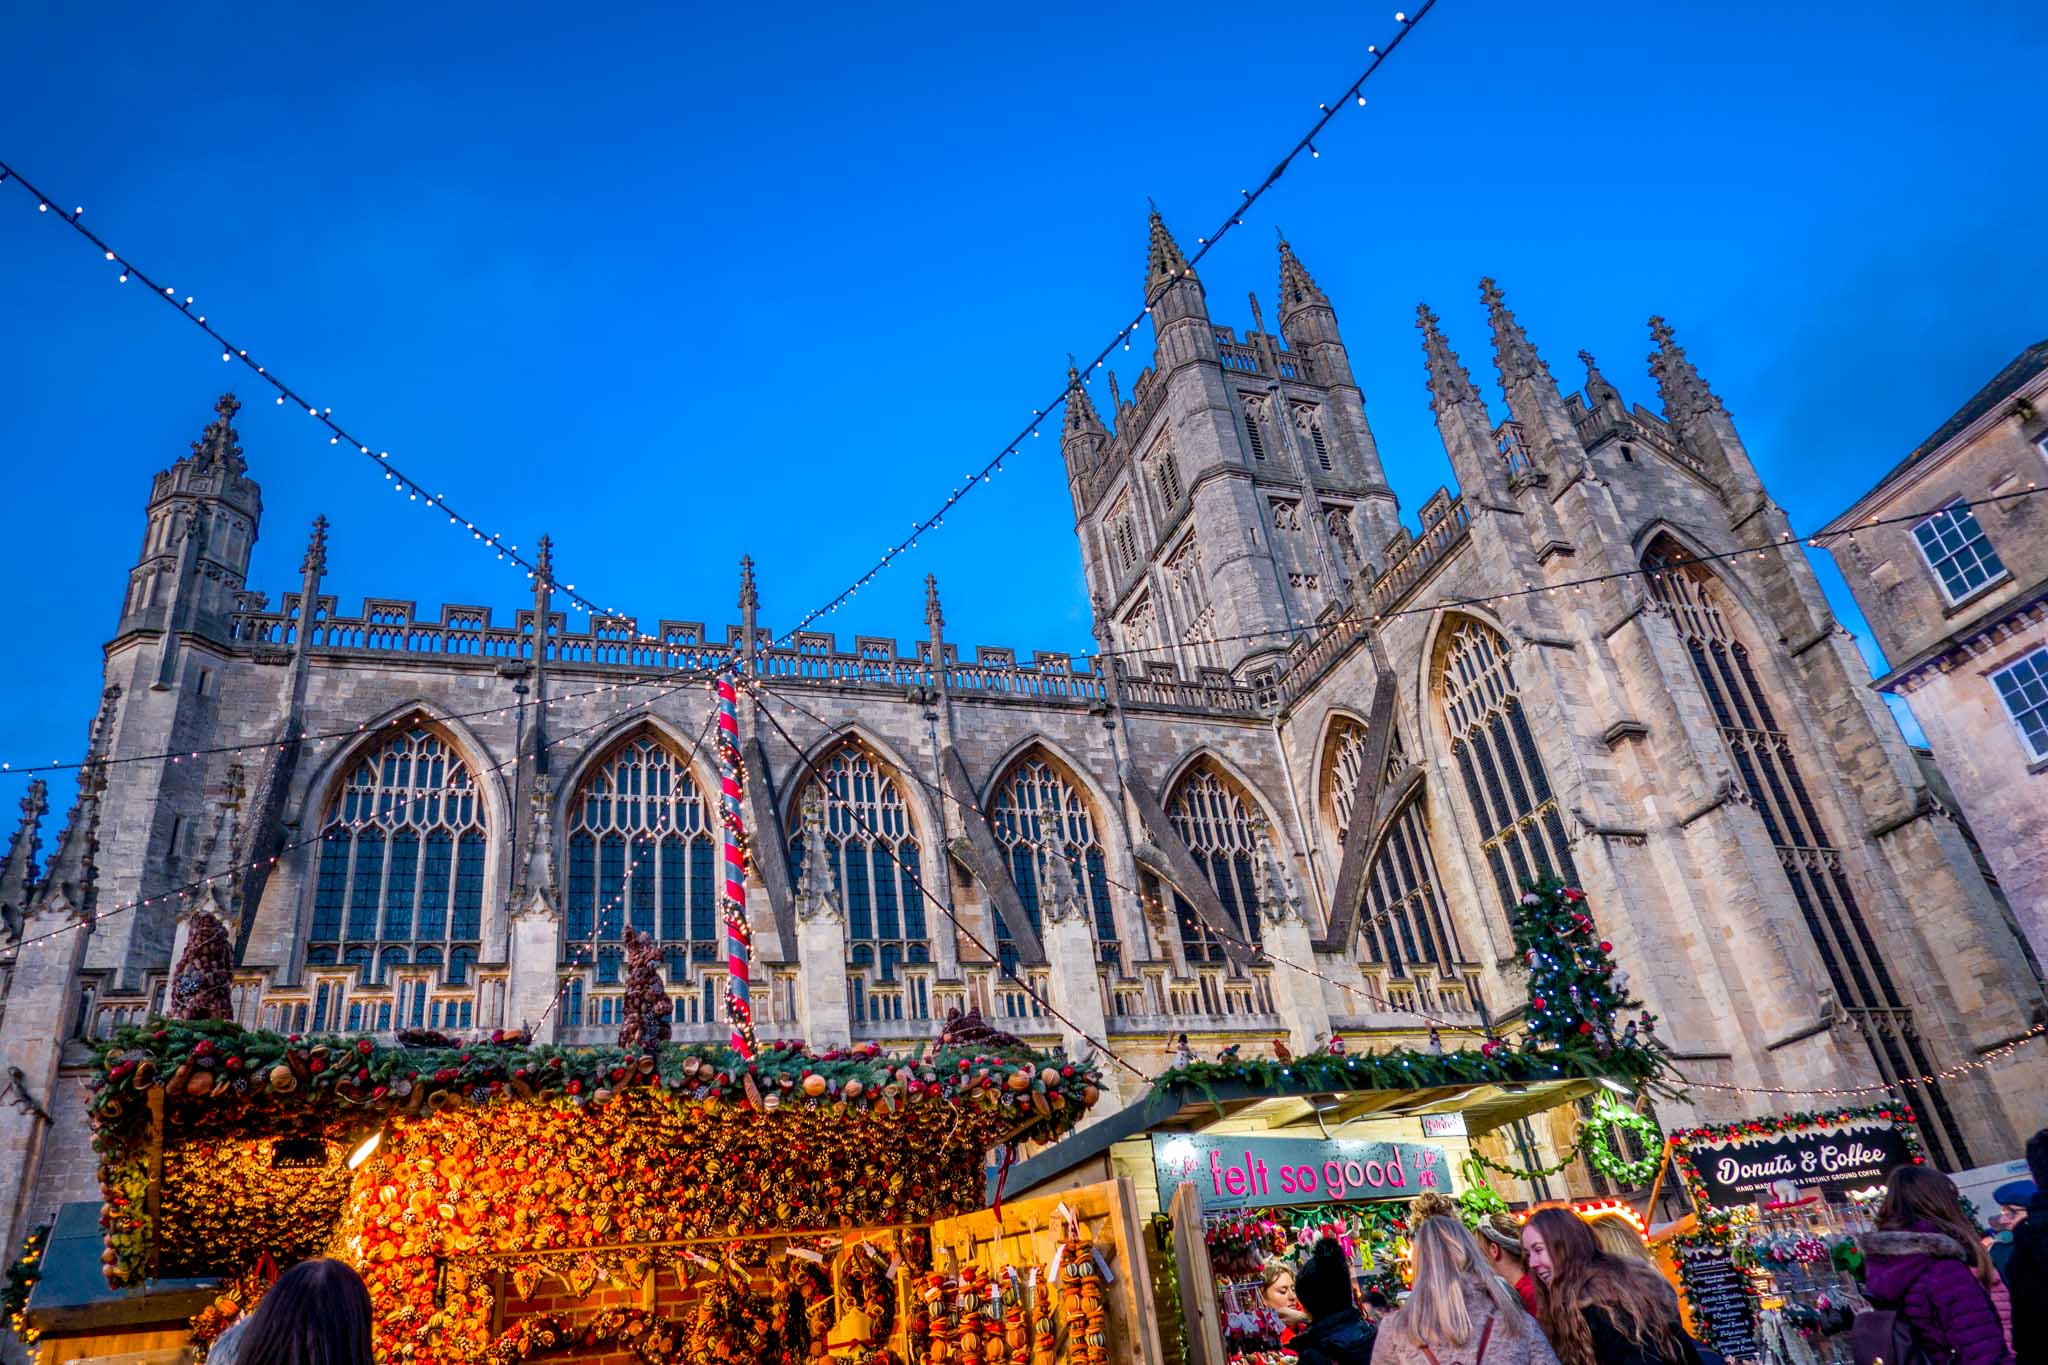 Stalls of the Bath Christmas market lit up at sunset in front of the large stone Bath Abbey